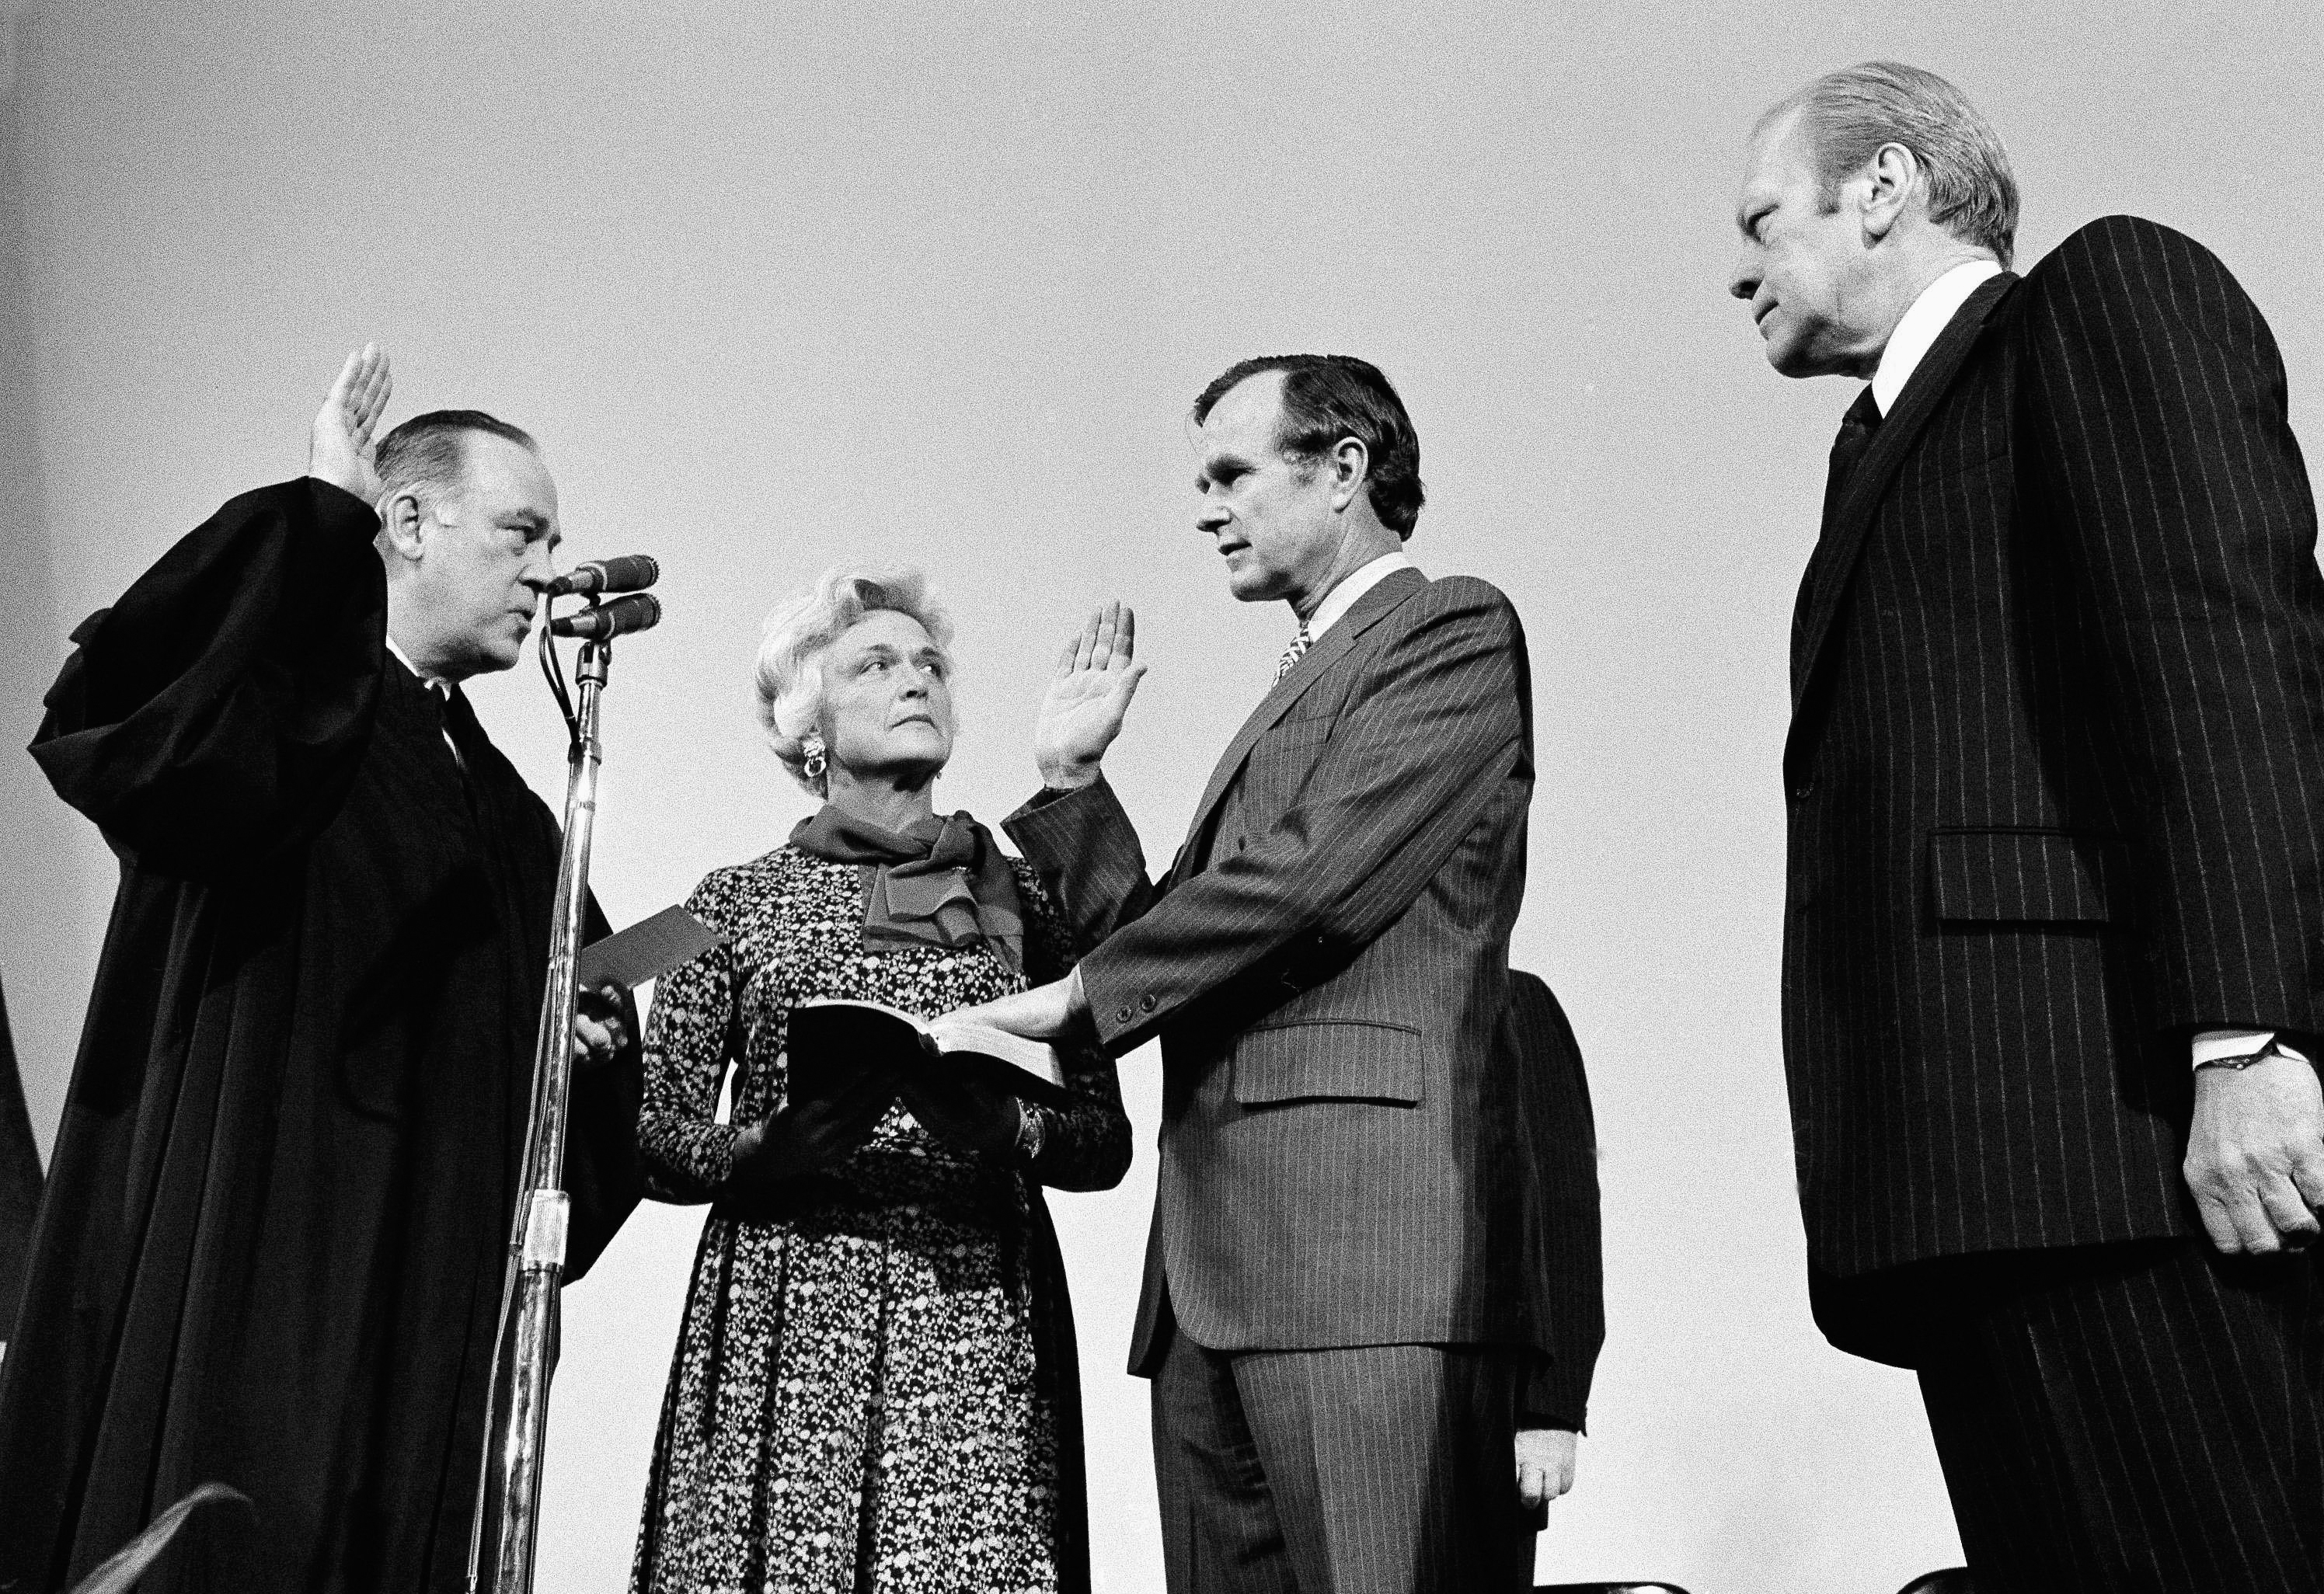 George H.W. Bush, center, is sworn in as director of the Central Intelligence Agency by Supreme Court Associate Justice Potter Stewart, left, as Barbara Bush and President Gerald Ford, right, look on at CIA headquarters in Langley, Va. He served in this role beginning in 1976 for about a year. (AP Photo/File)